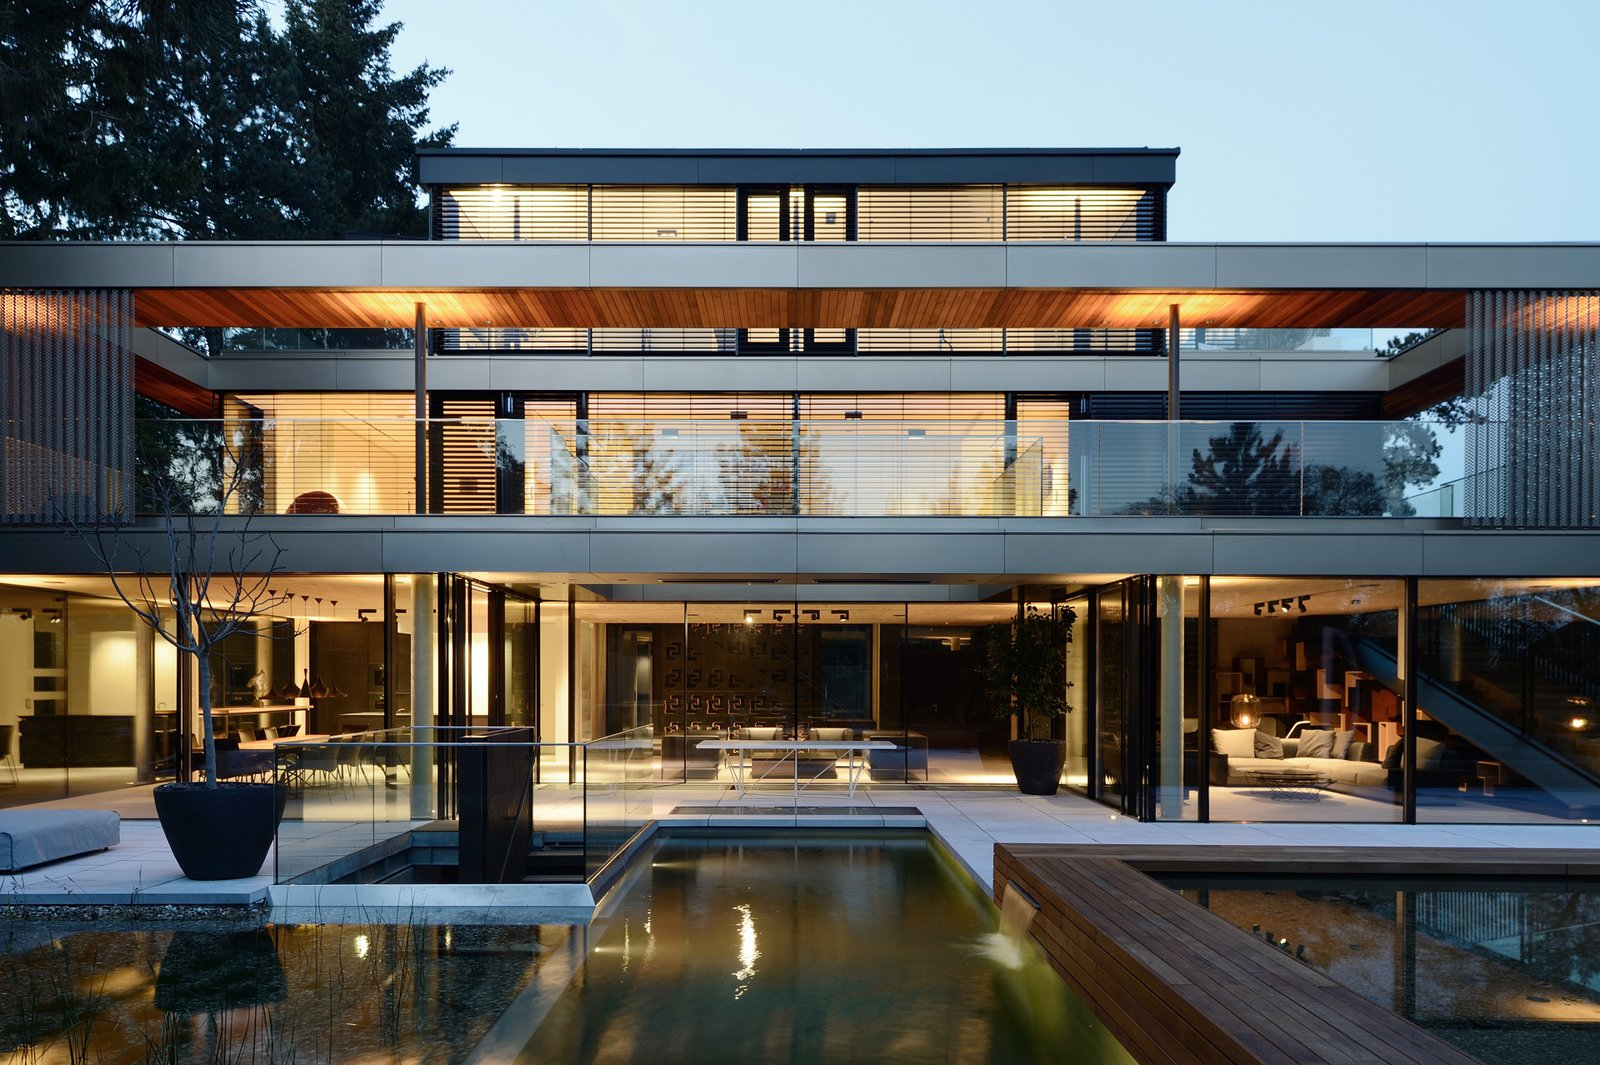 South view from the pool  33 by Architect Zoran Bodrozic